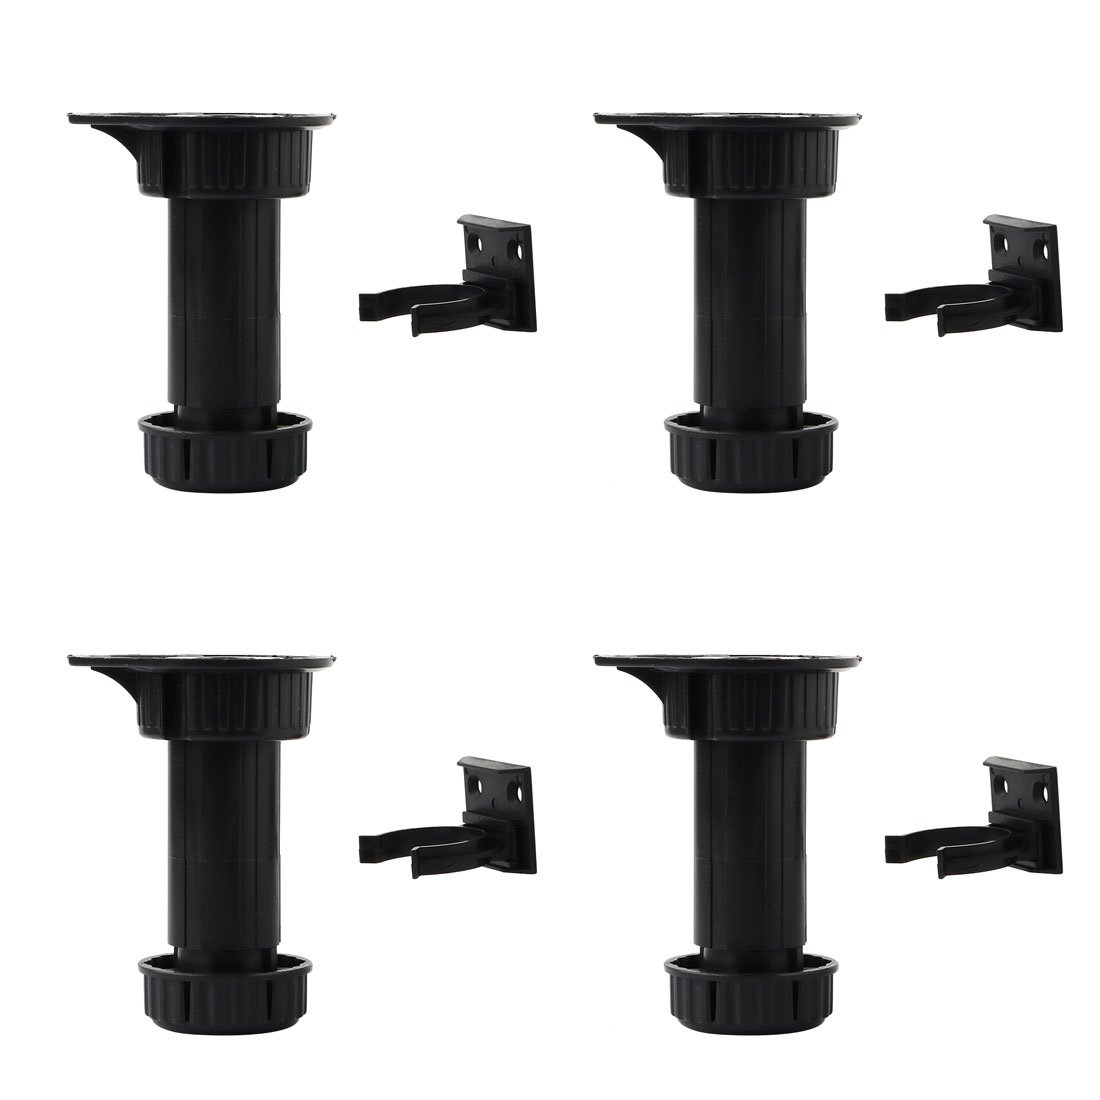 uxcell ABS 4pcs Adjustable Kitchen Cabinet Legs Feet Height(Total:100-145mm) x 44mm Dia